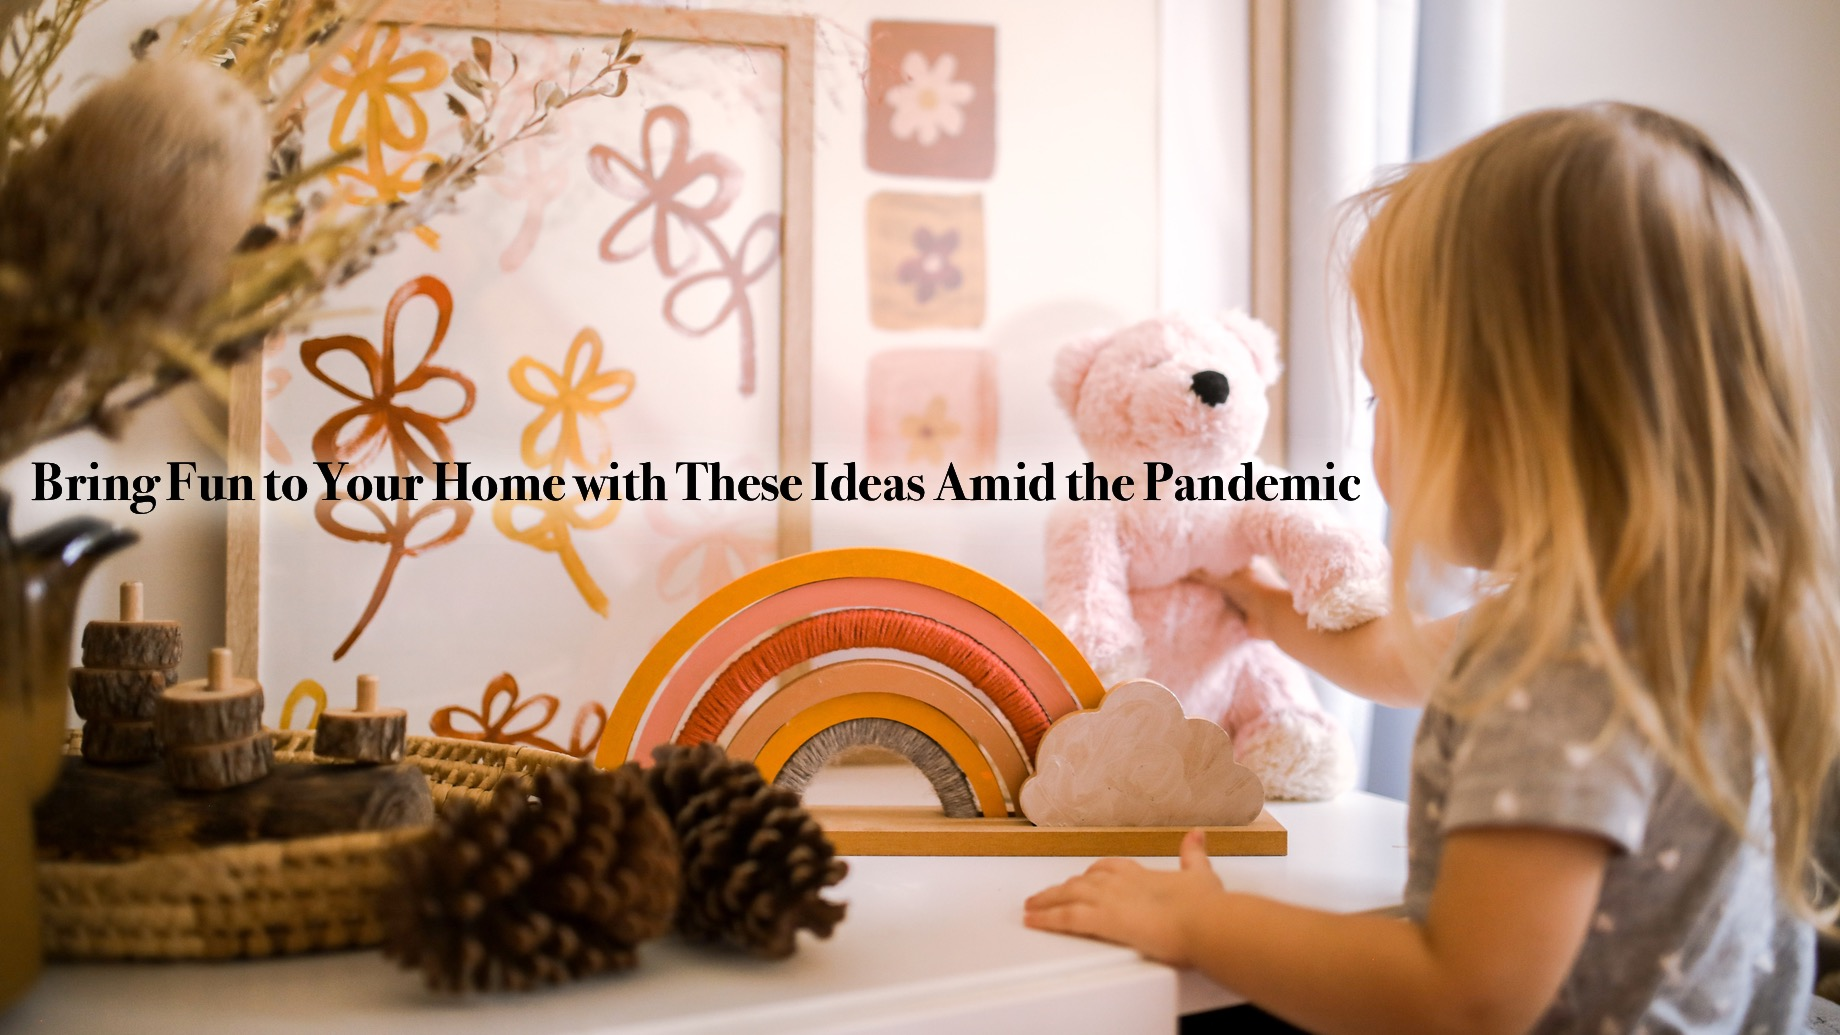 Bring Fun to Your Home with These Ideas Amid the Pandemic